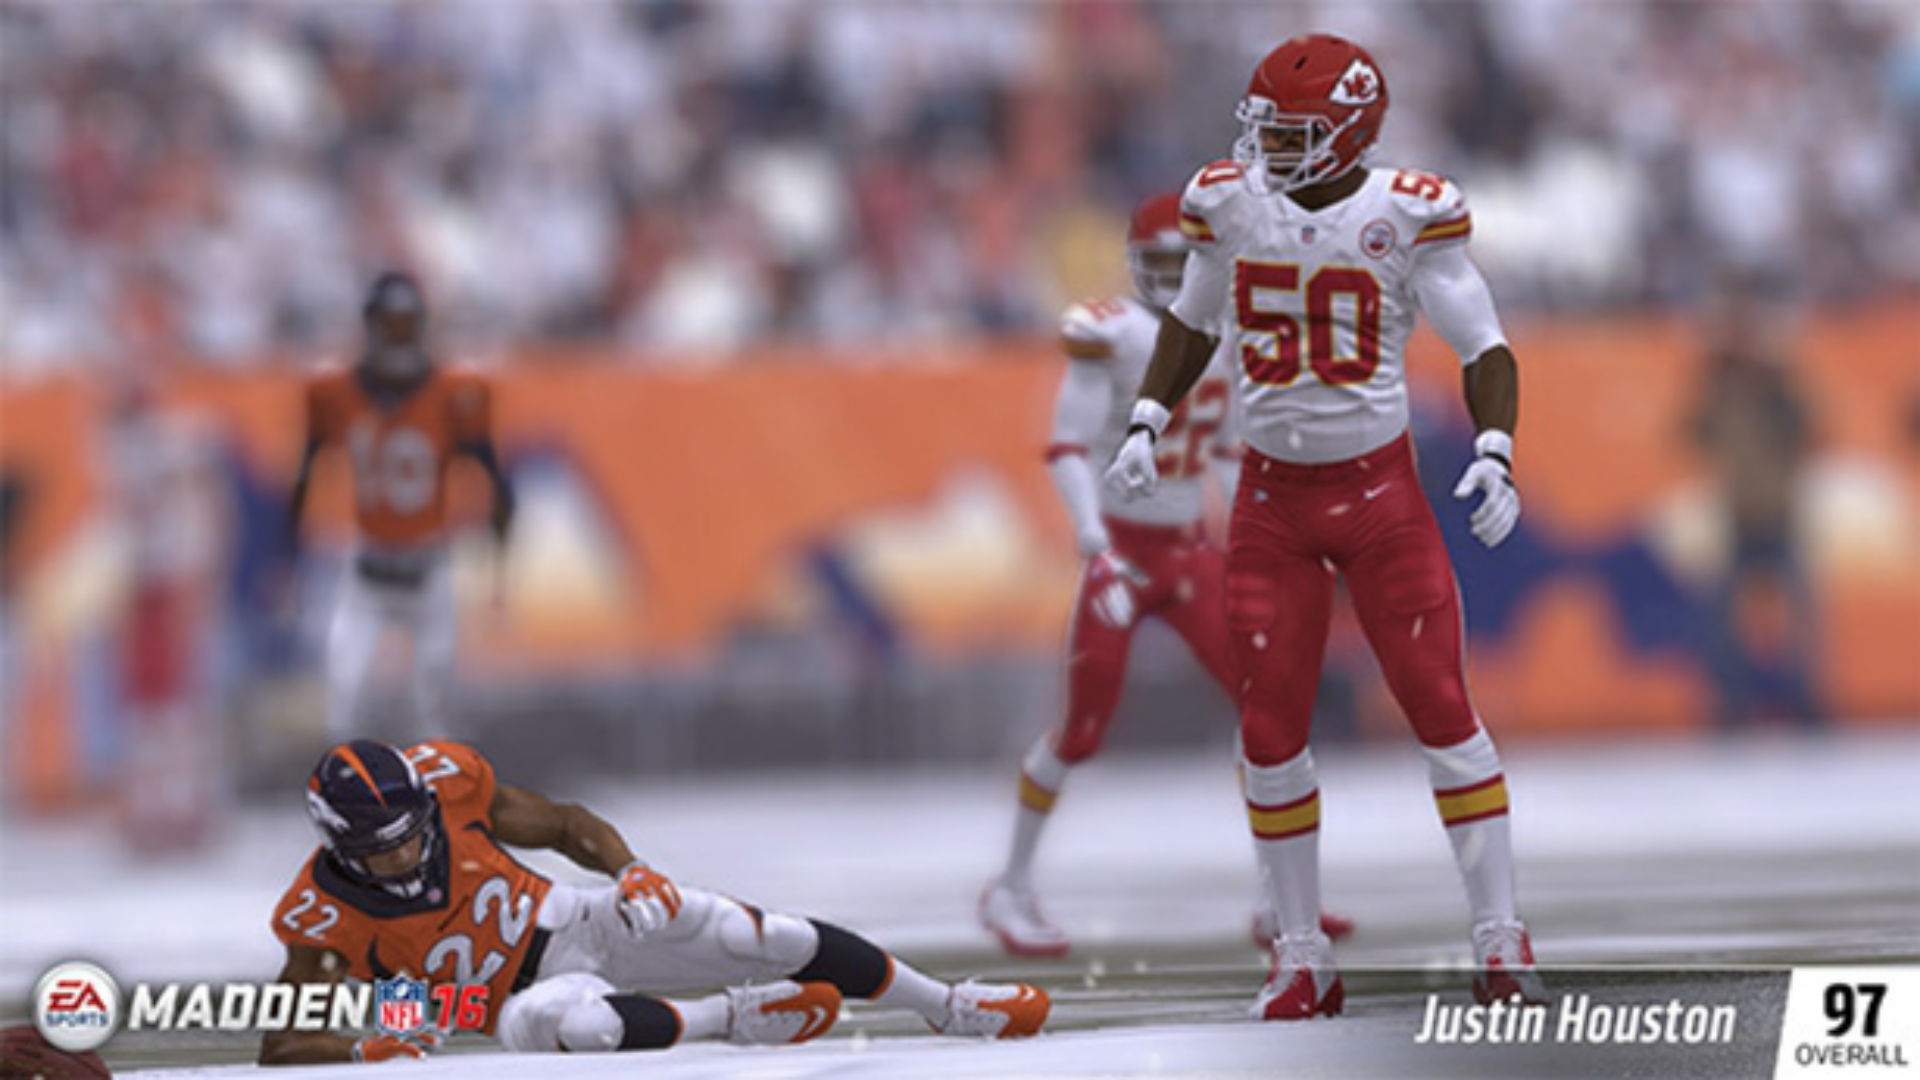 Top rated linebackers revealed for Madden NFL 16